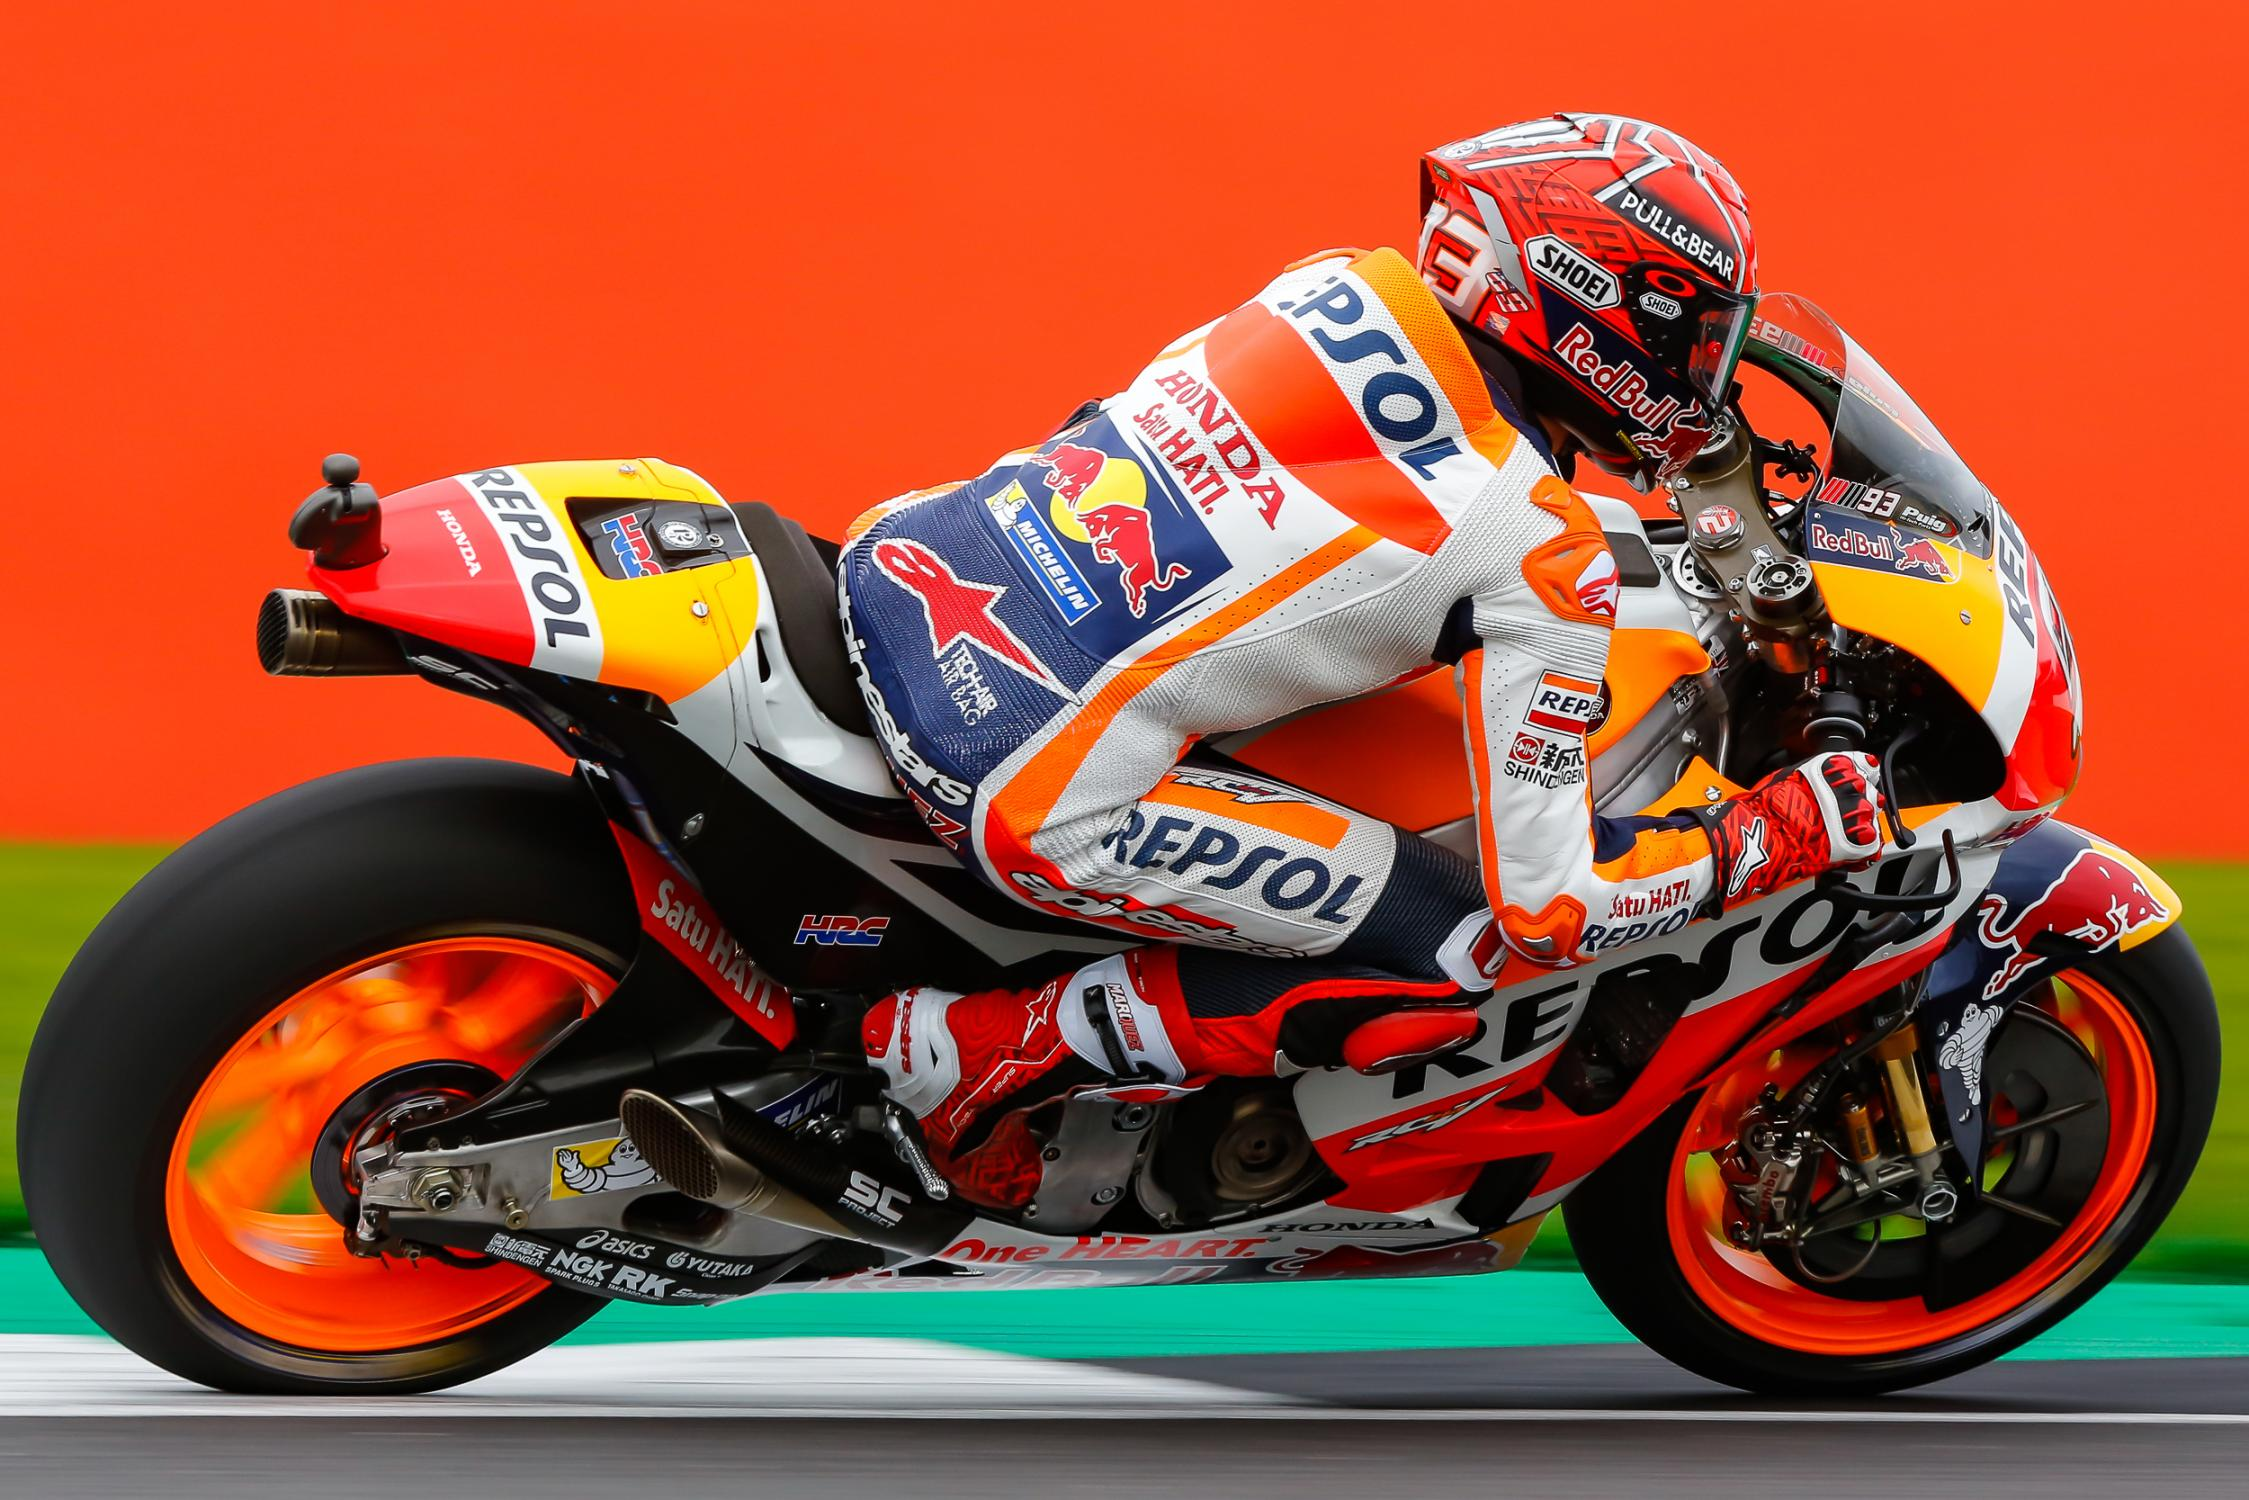 93-marc-marquez-esp_gp_5905.gallery_full_top_fullscreen.jpg